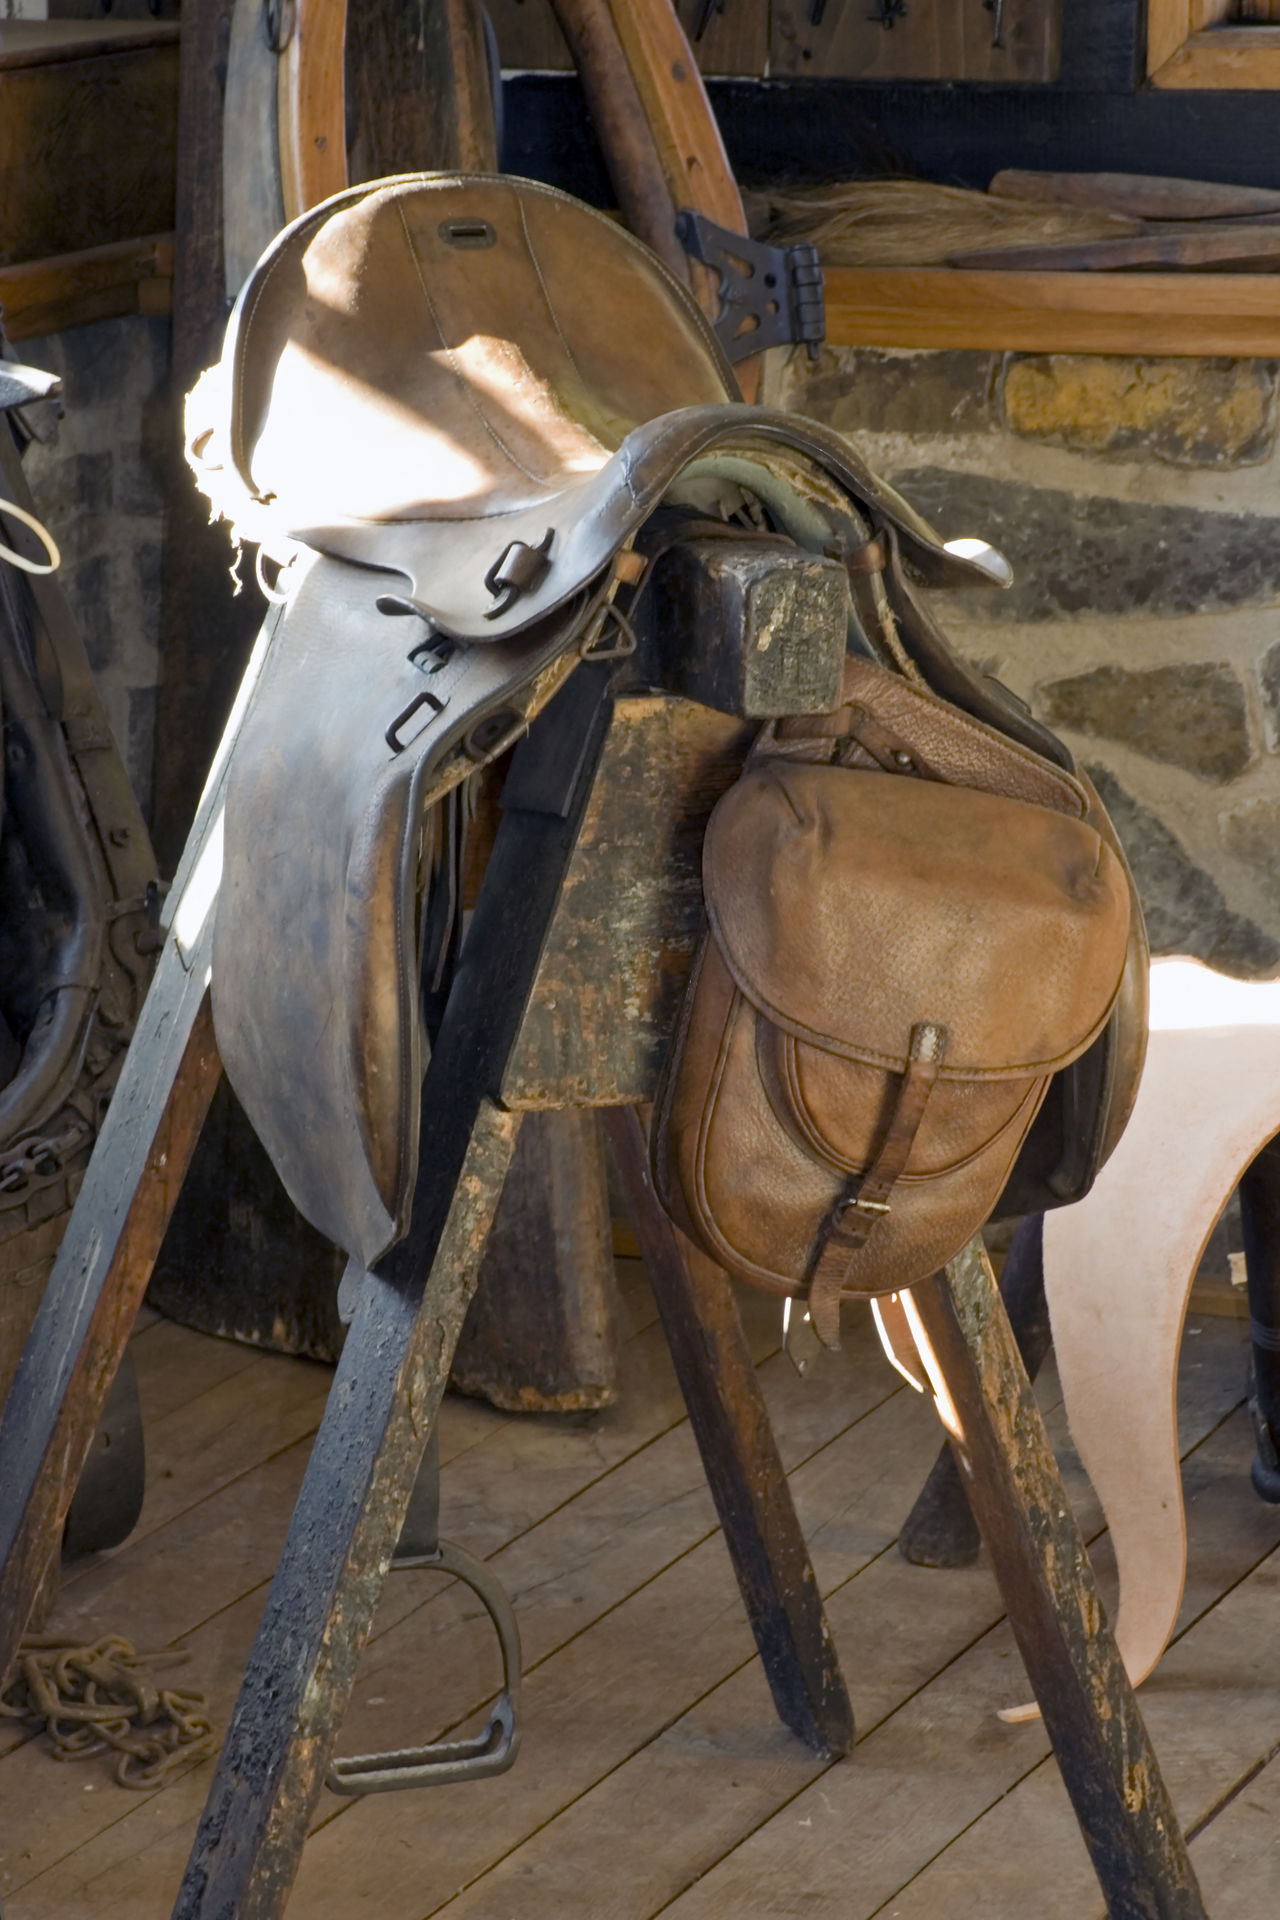 antique western saddle Ancient Art And Craft Brown Close-up Craft Crafts Equipment Horse Horses Indoors  Leather No People Old Riding Saddle Saddlebag Saddlery Saddles Single Object Skill  Stock Vintage Western Saddle Wild West Workshop